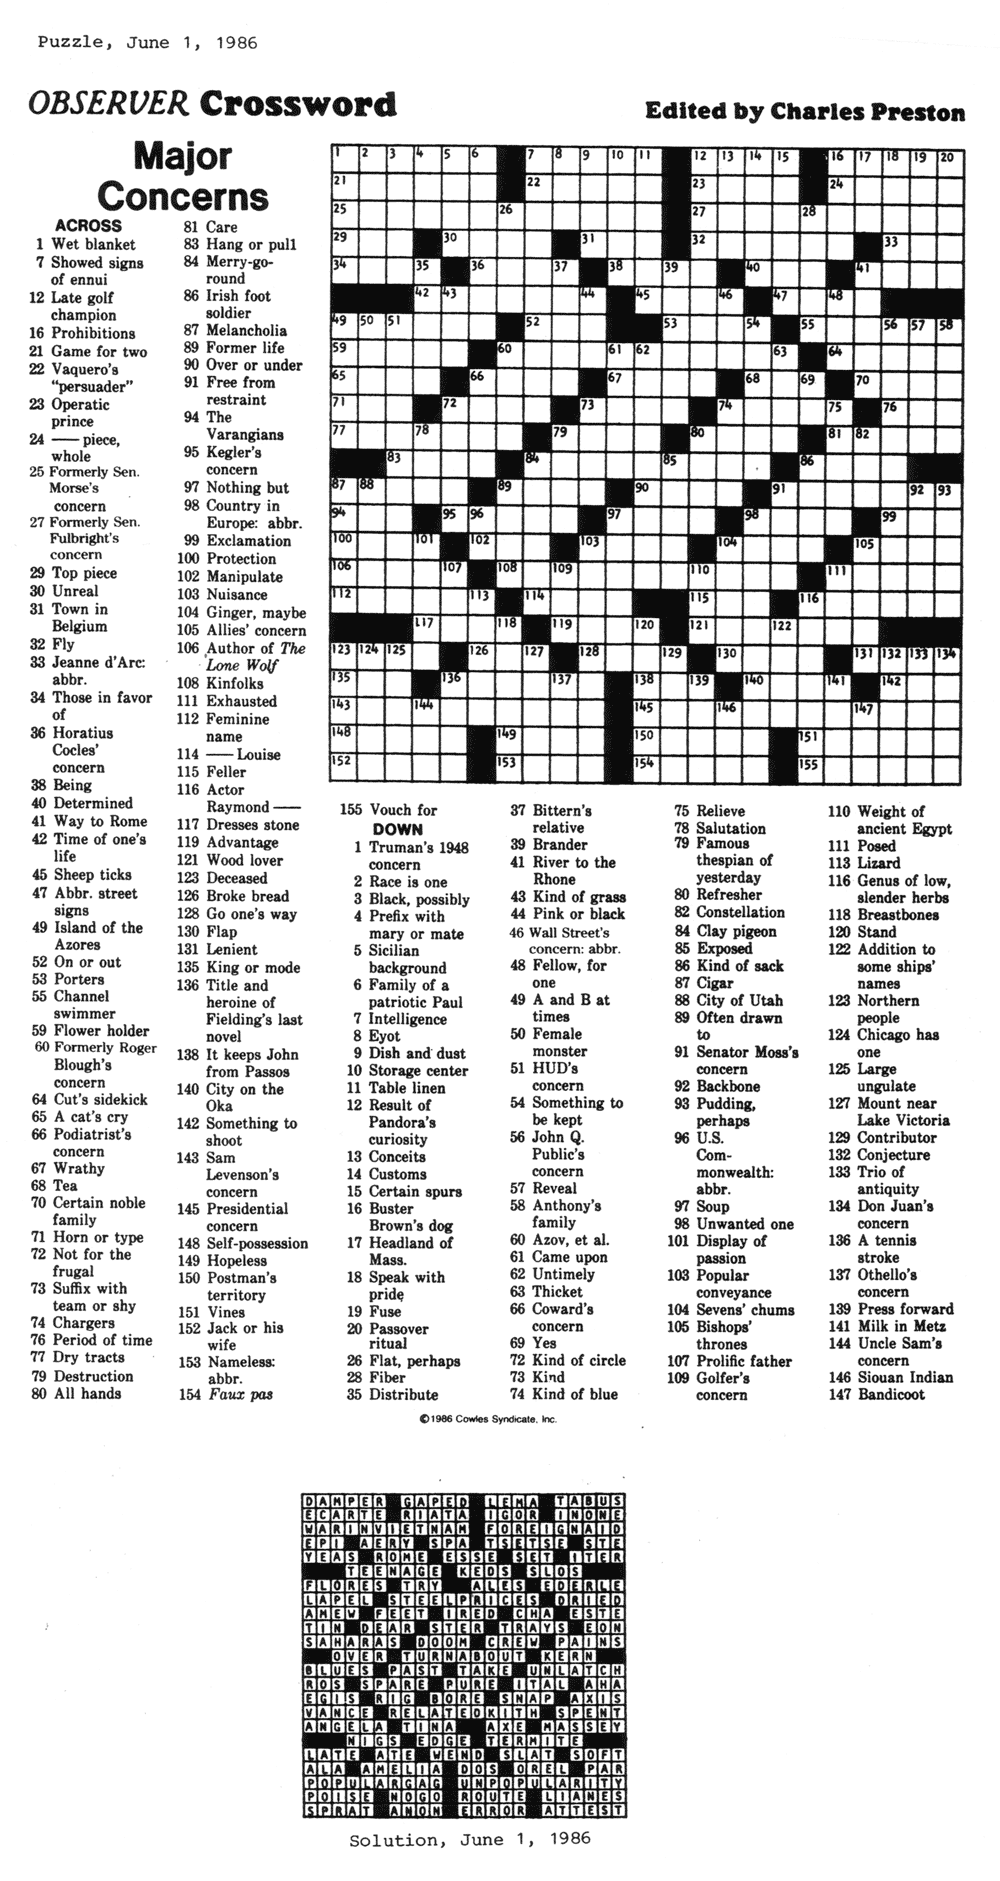 image relating to Thomas Joseph Crossword Puzzles Printable Free identified as Comics Kingdom - Talk to the Archivist: CROSSWORD PUZZLES - 2015